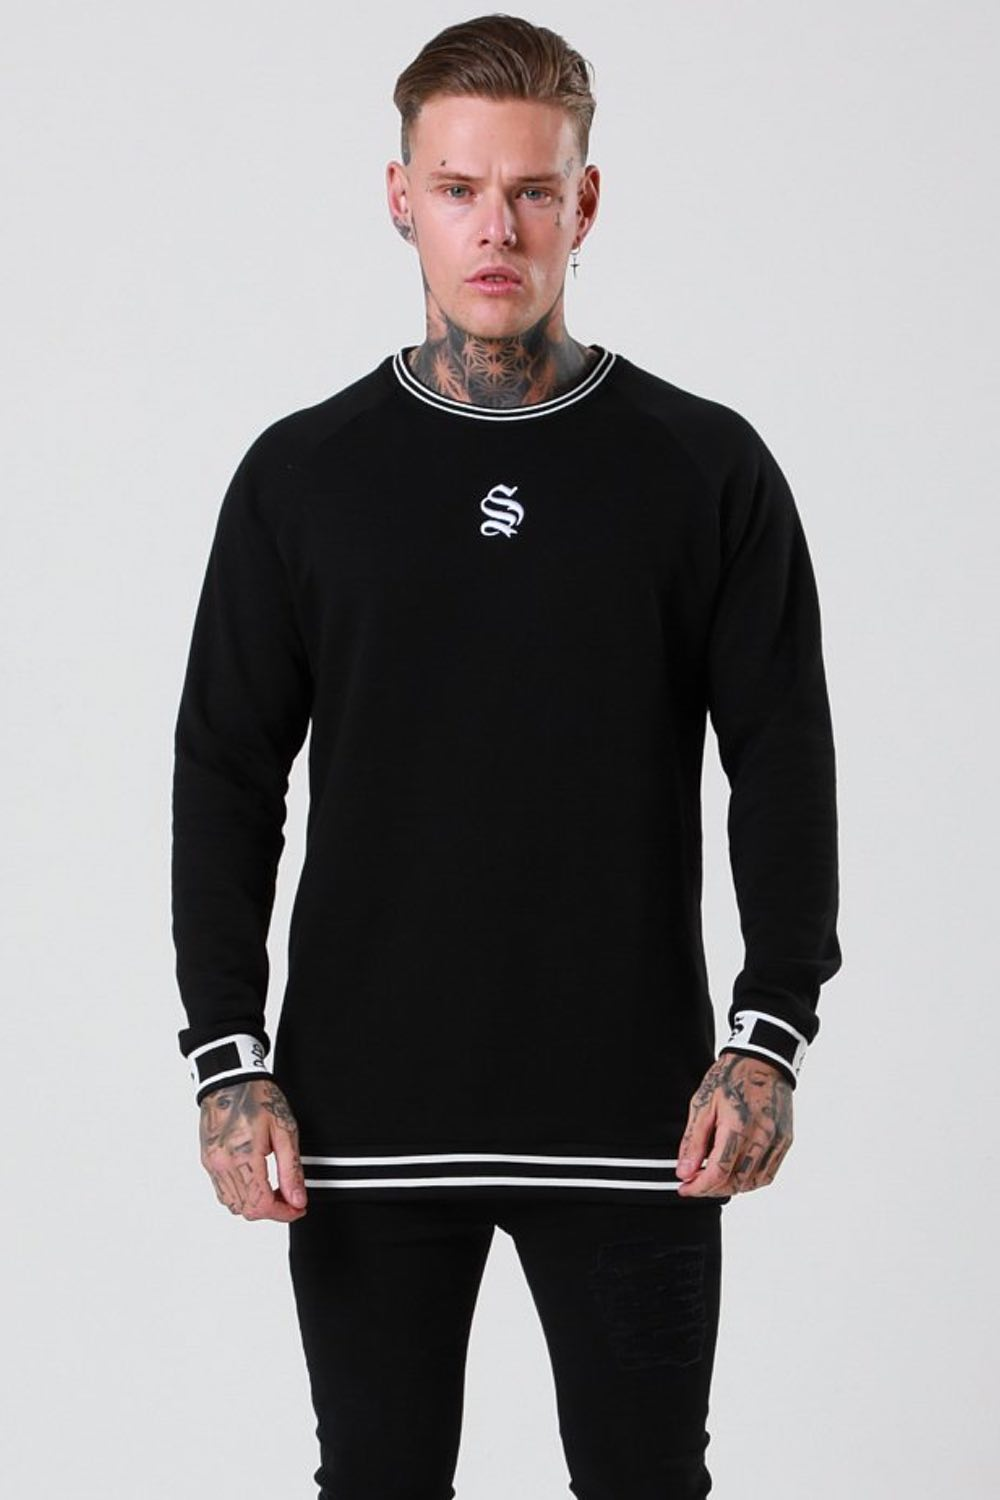 Sinners Attire Hypa Sweater - Black